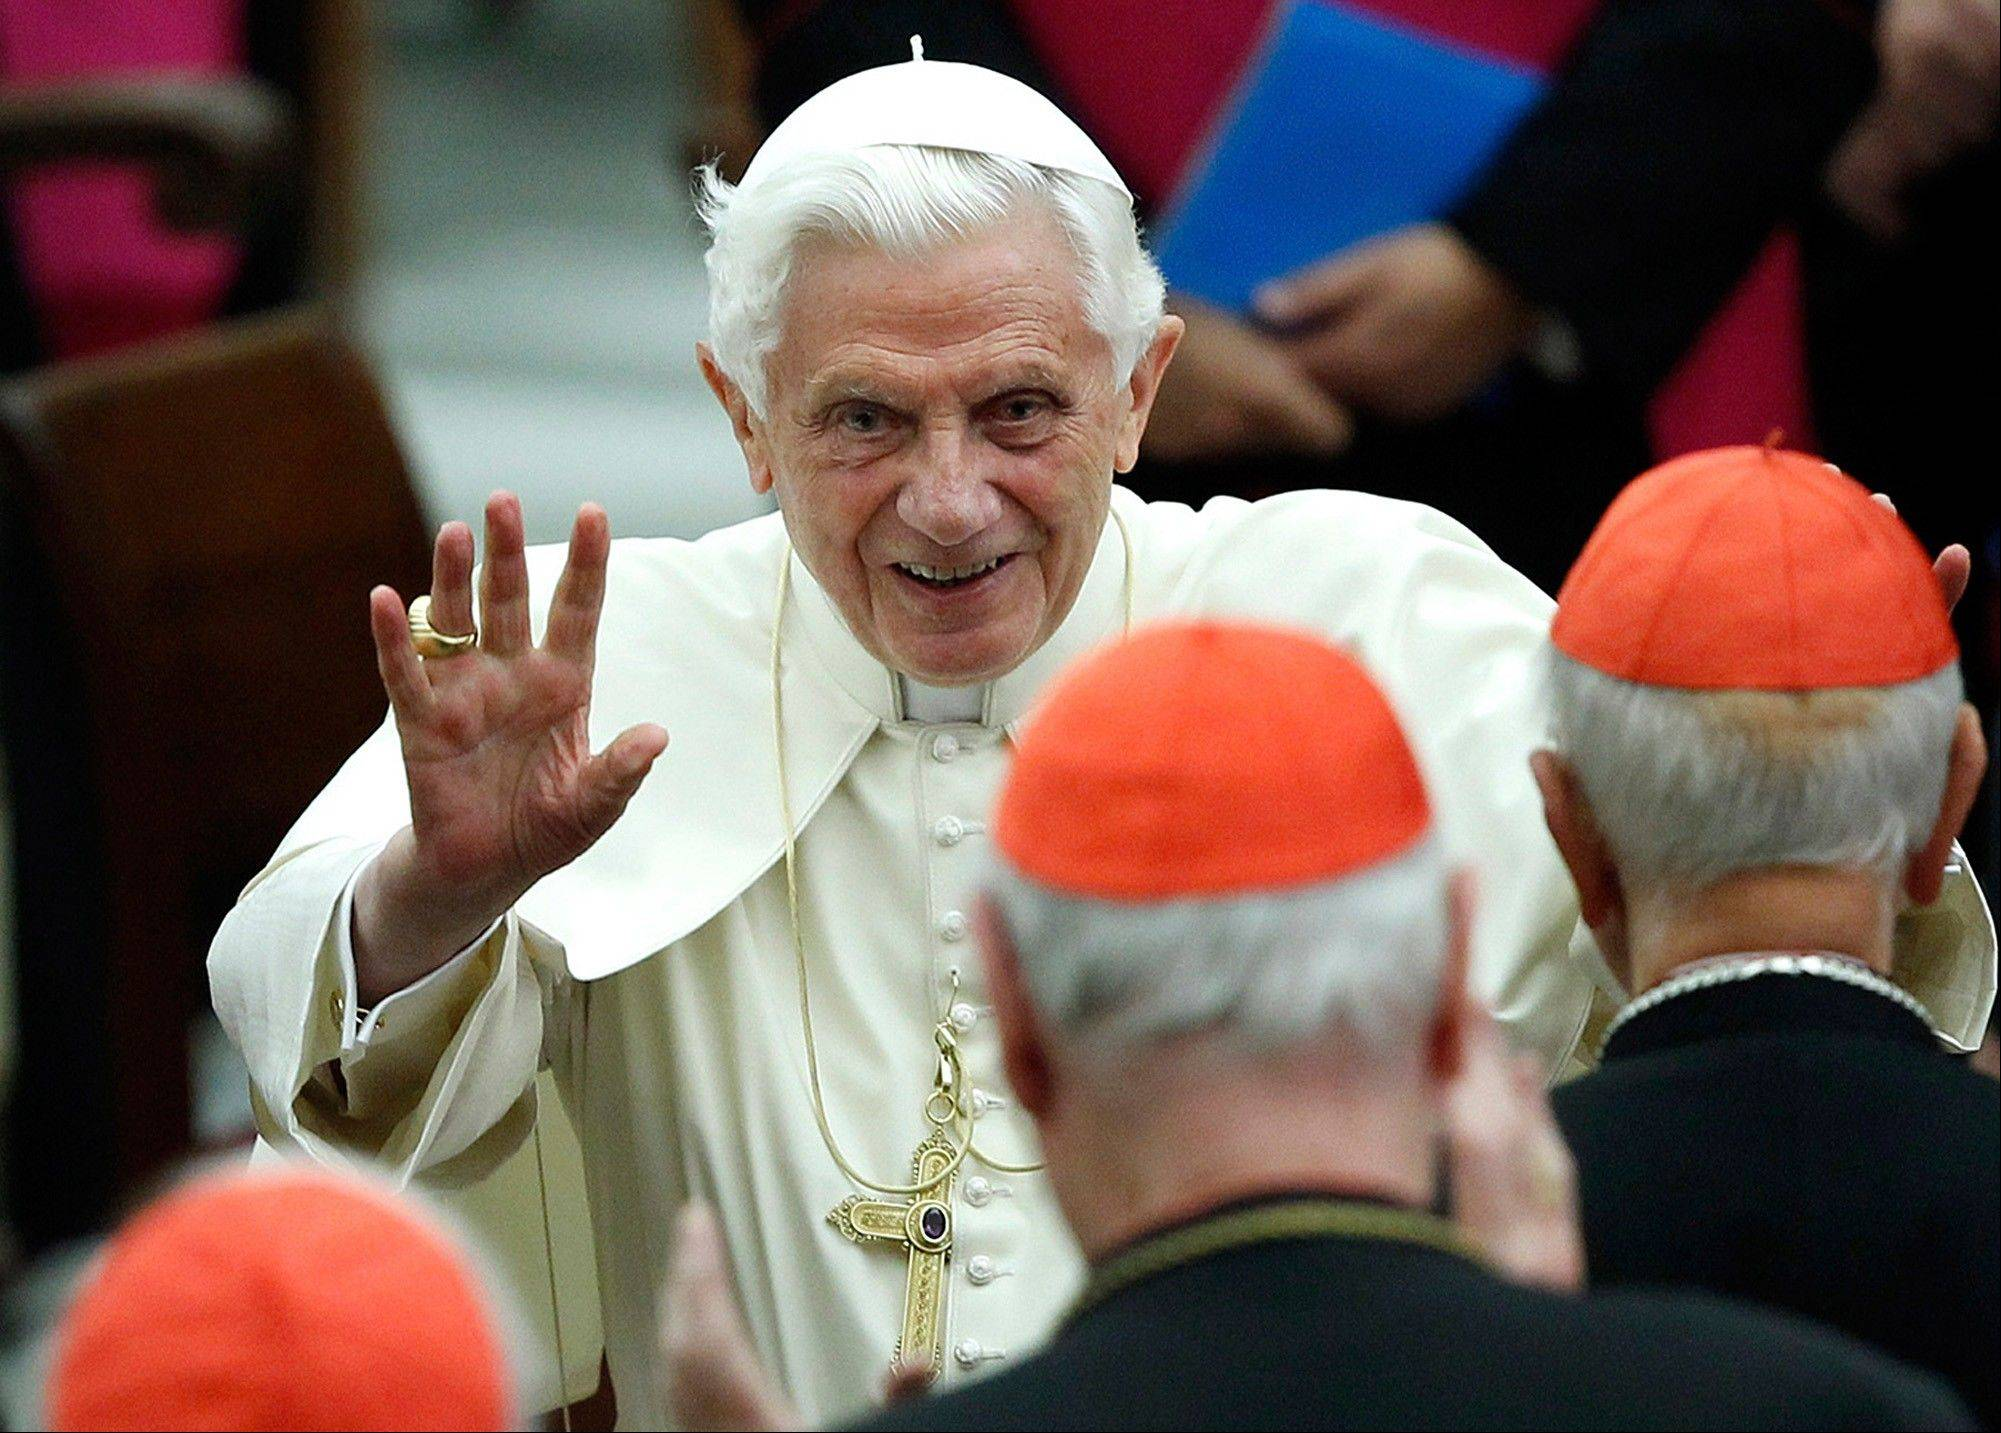 Pope Benedict XVI waves as he leaves Paul VI hall after attending a concert of the Asturias Principality Symphony Orchestra directed by Chilean conductor Maximiano Valdes.